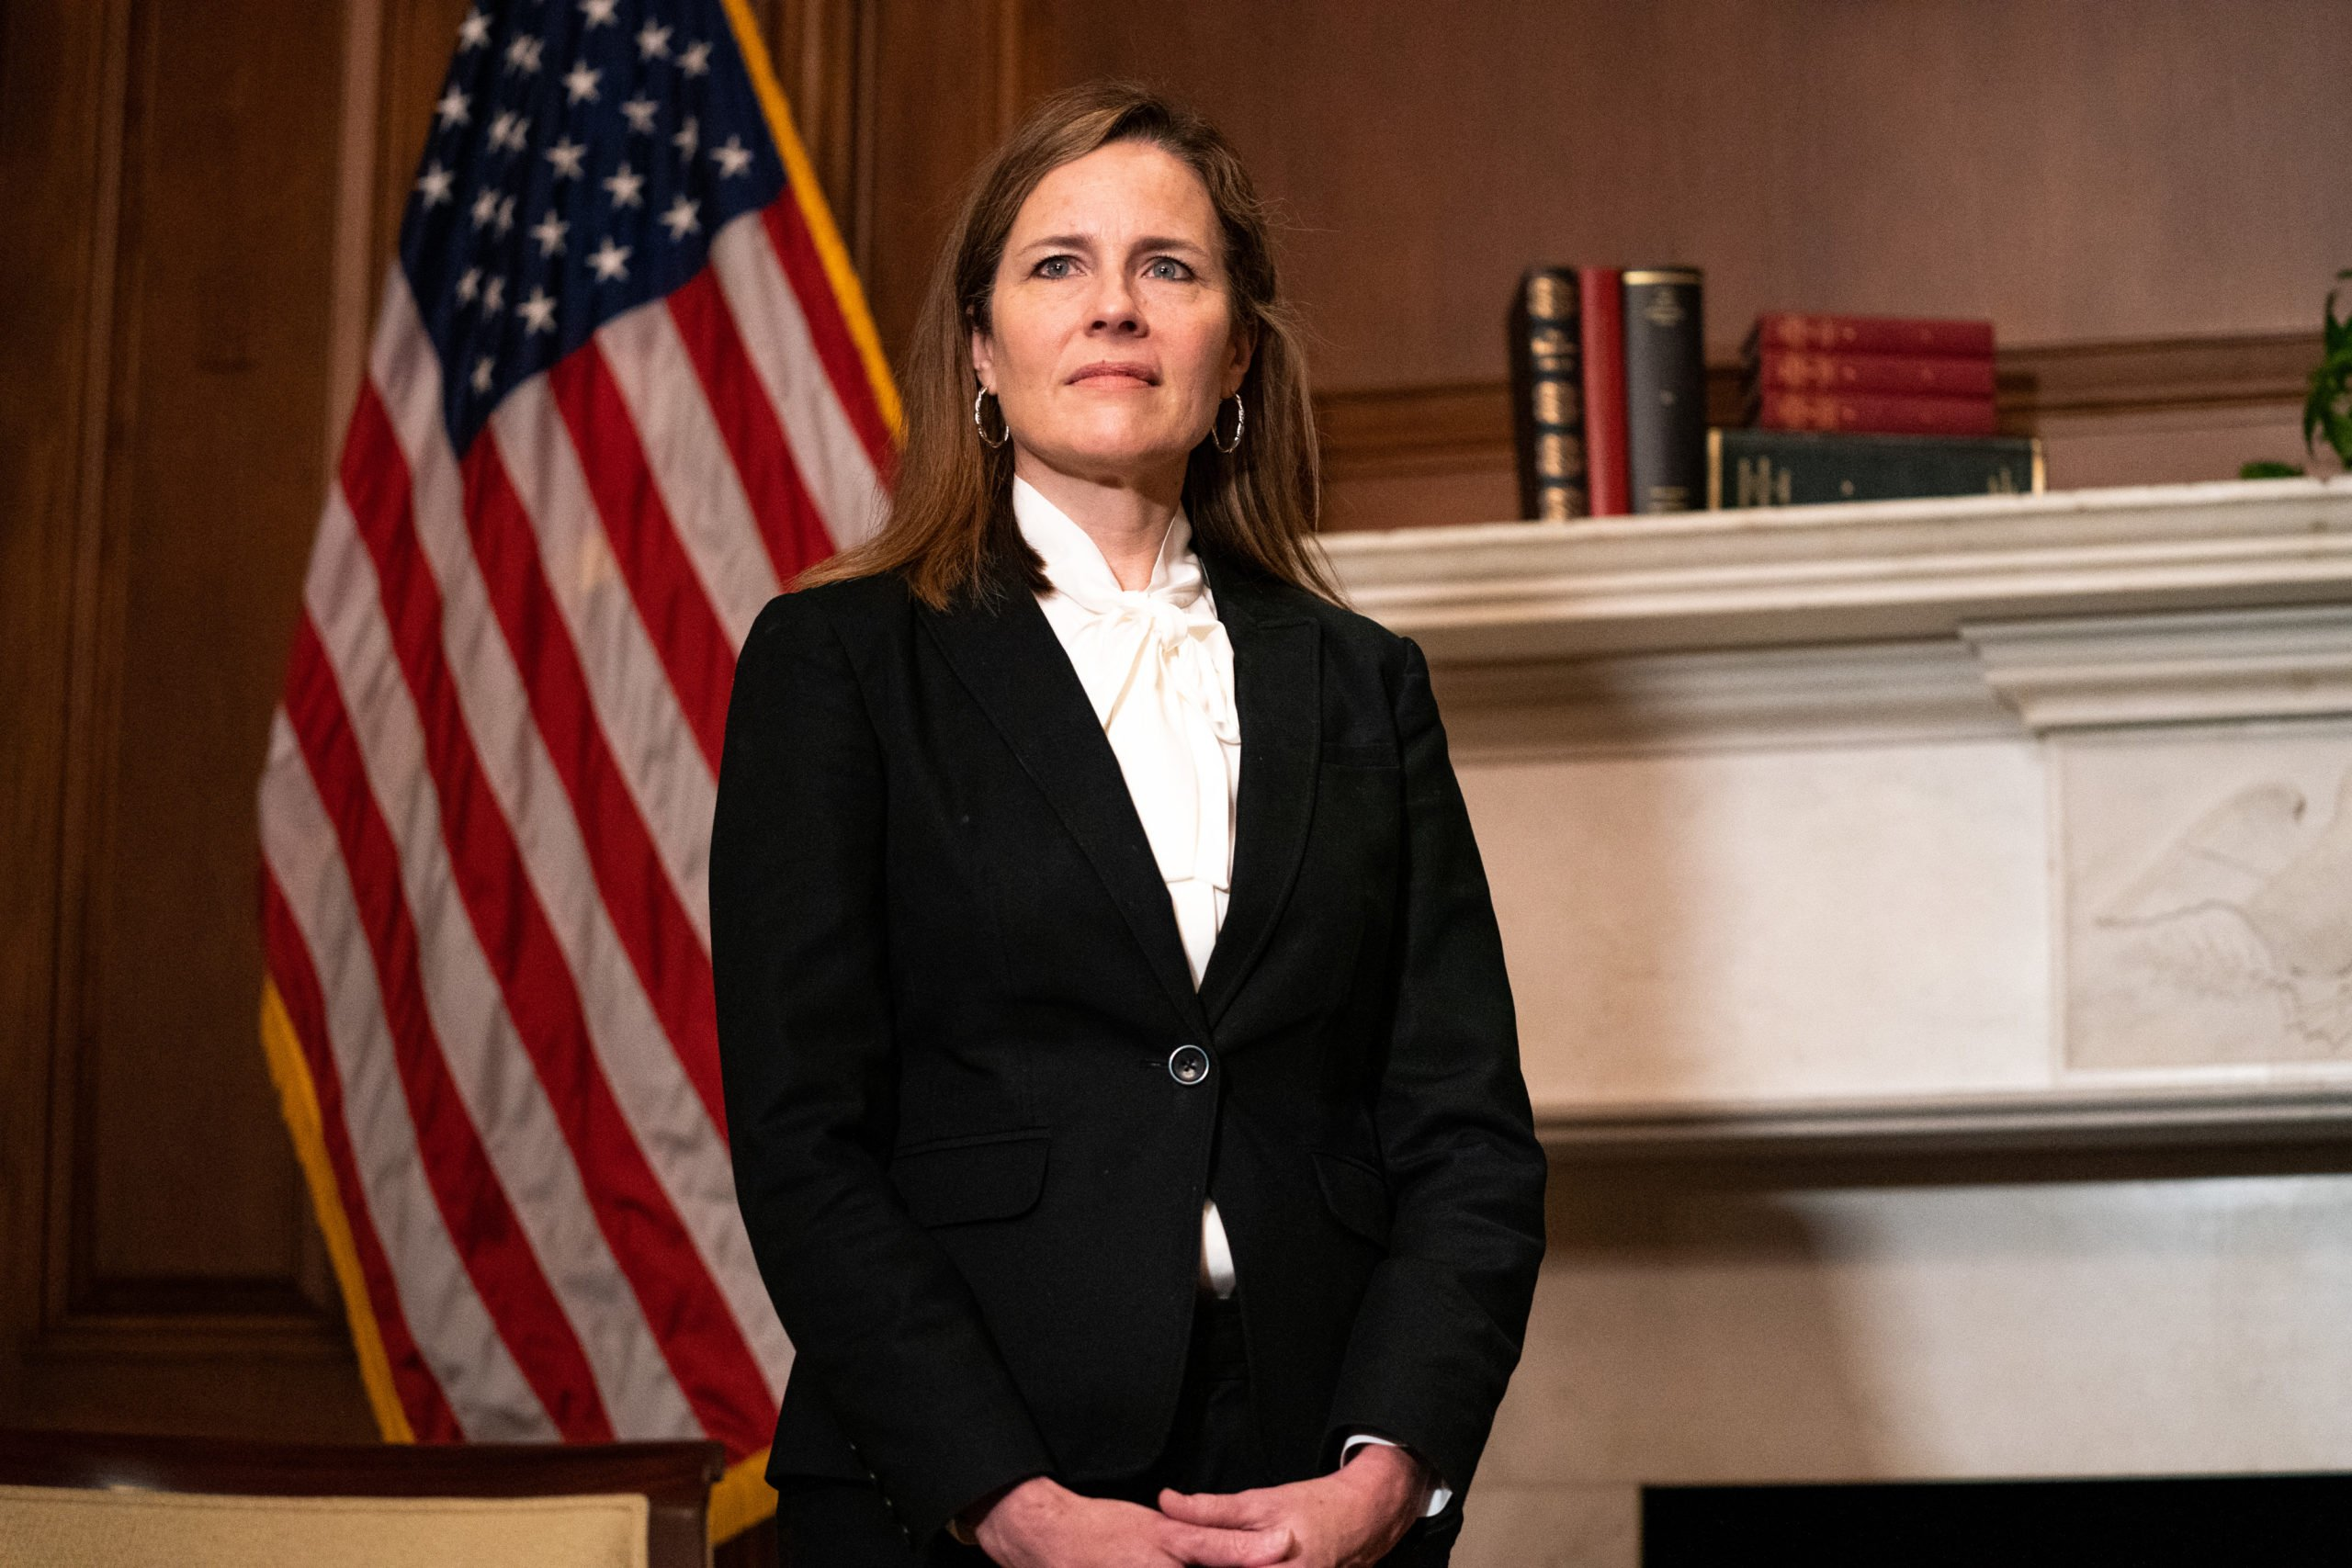 WASHINGTON, DC - OCTOBER 1: Judge Amy Coney Barrett, President Donald Trump's nominee for Supreme Court, poses for a photo before a meeting with Senator Steve Daines, R-Mont., at the United States Capitol Building on October 1, 2020 in Washington, DC. (Photo by Anna Moneymaker - Pool/Getty Images)